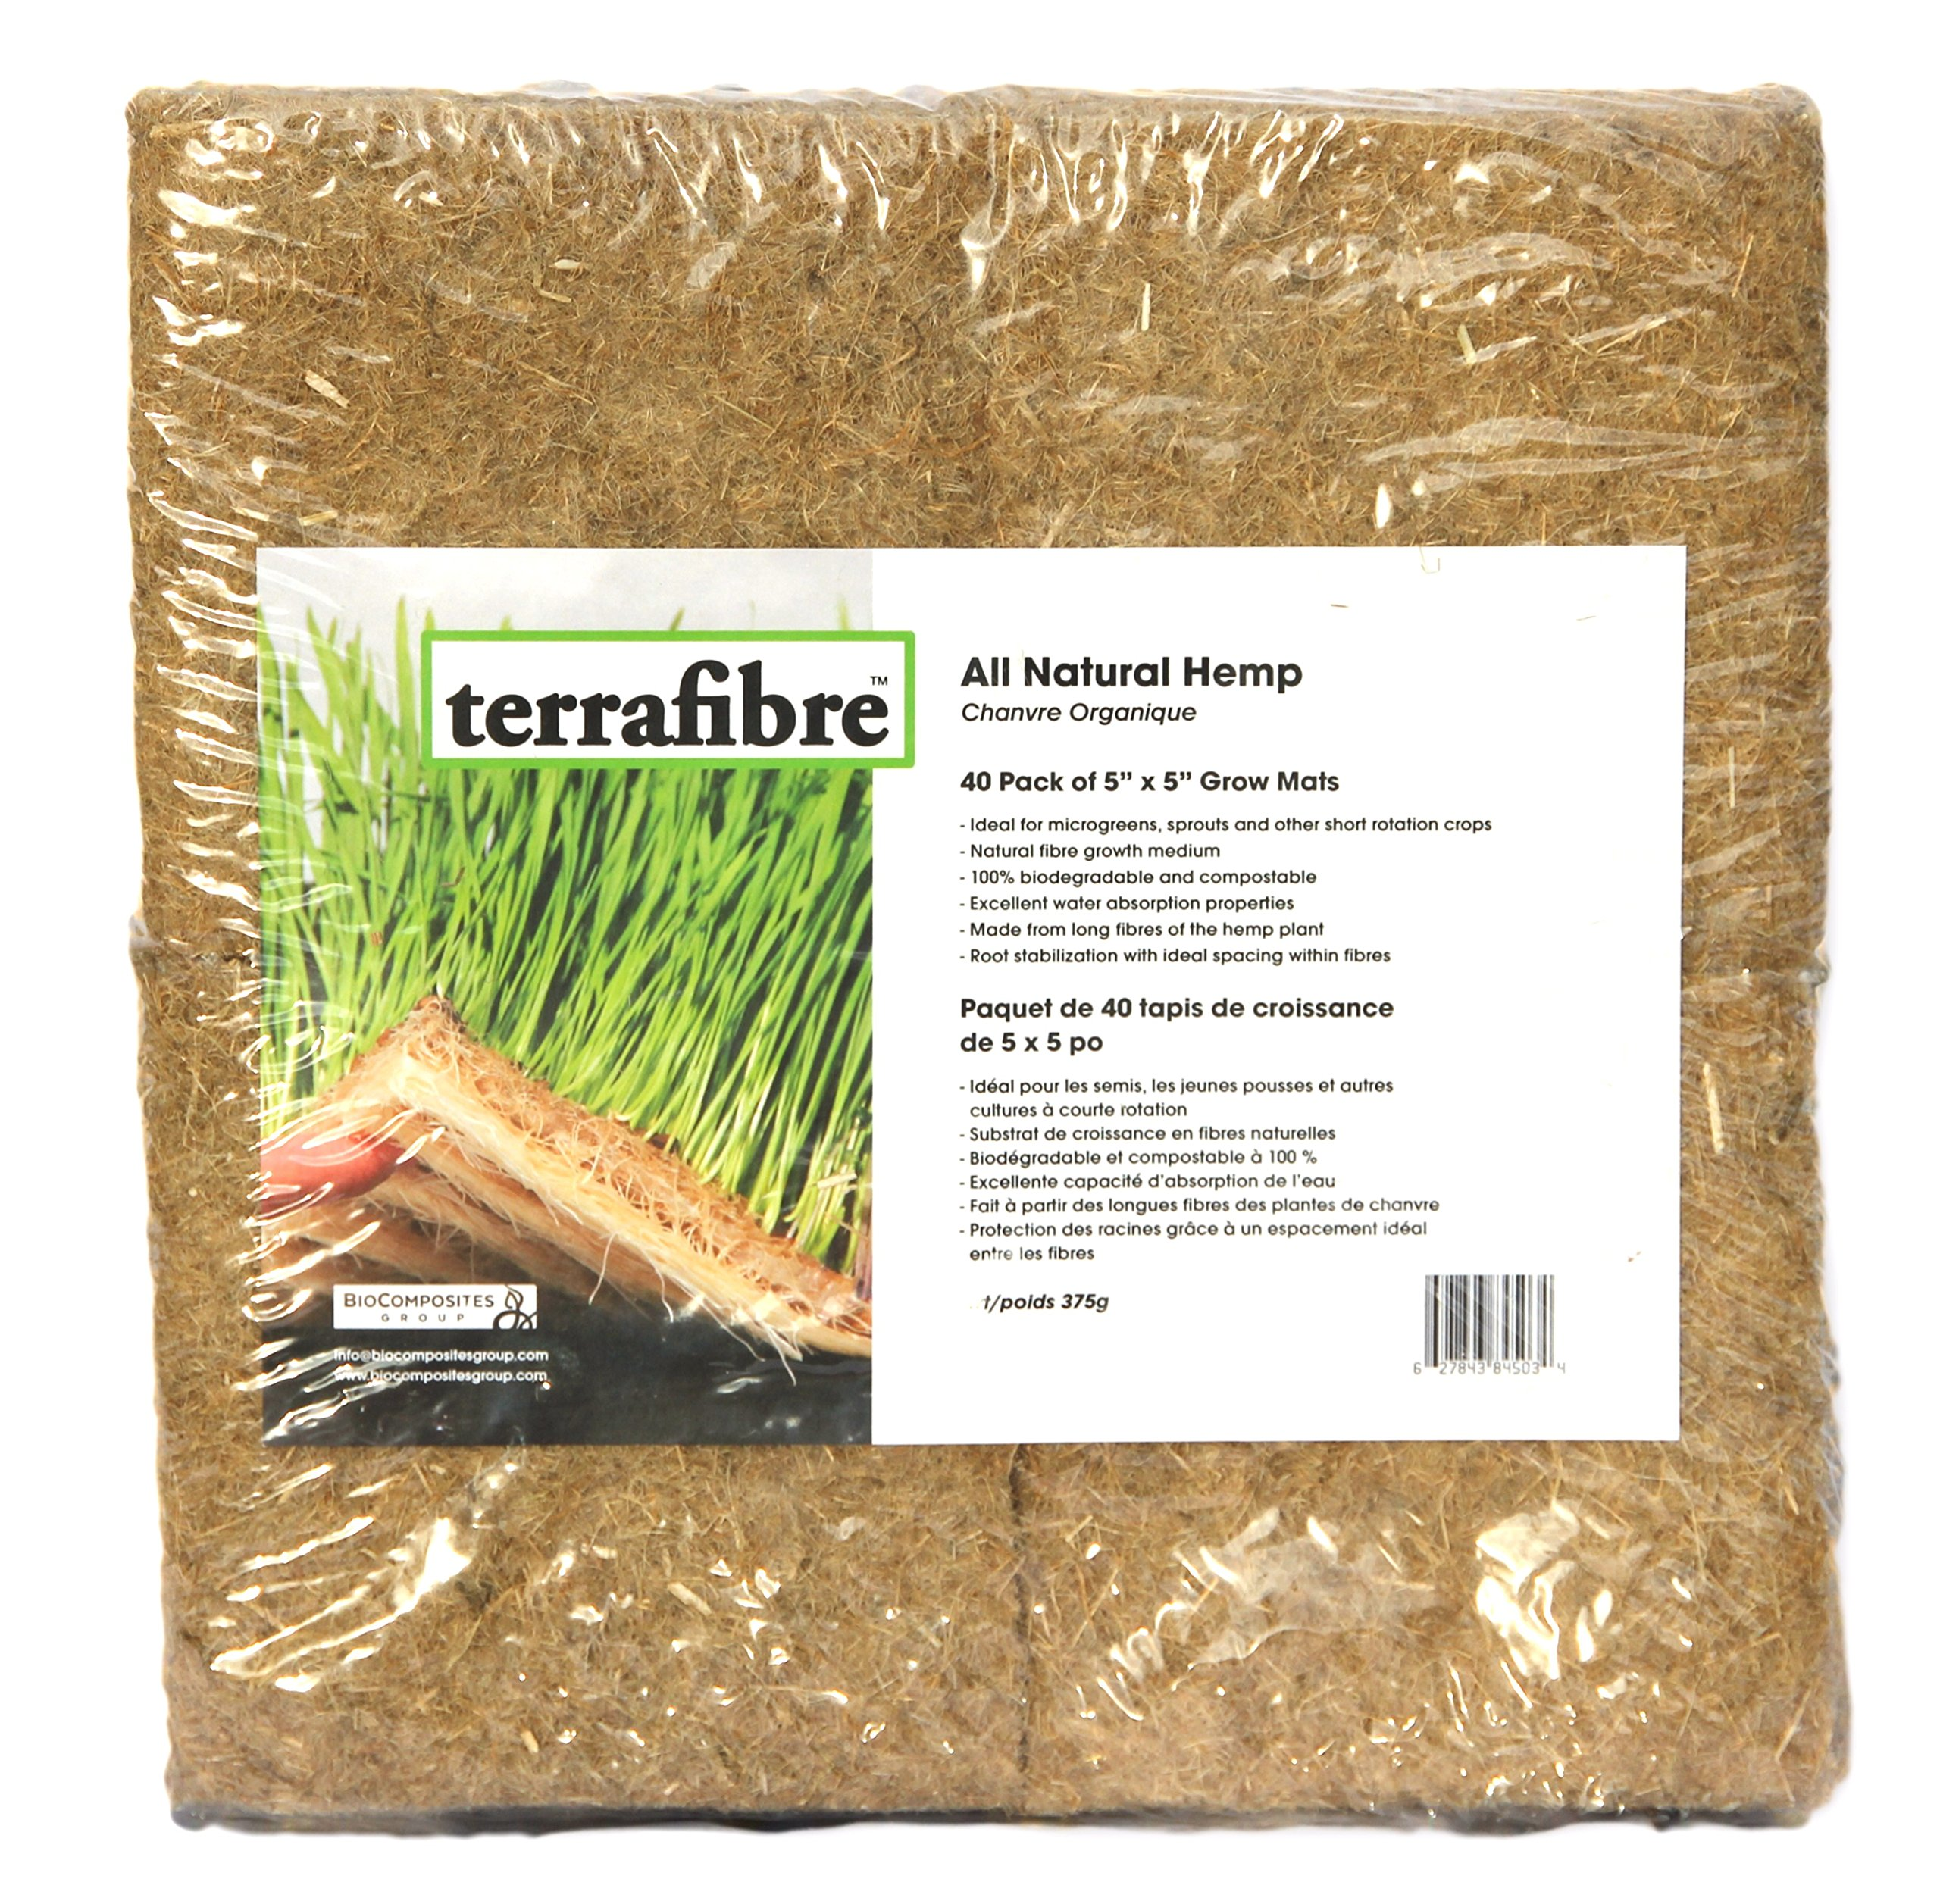 Terrafibre Hemp Grow Mat - Perfect for Microgreens, Wheatgrass, Sprouts - 560 Mat Box 5'' x 5'' (Fits 5'' by 5'' Growing Tray or 8 in a Standard 10'' X 20'' Germination Tray) Fully Biodegradable by Terrafibre